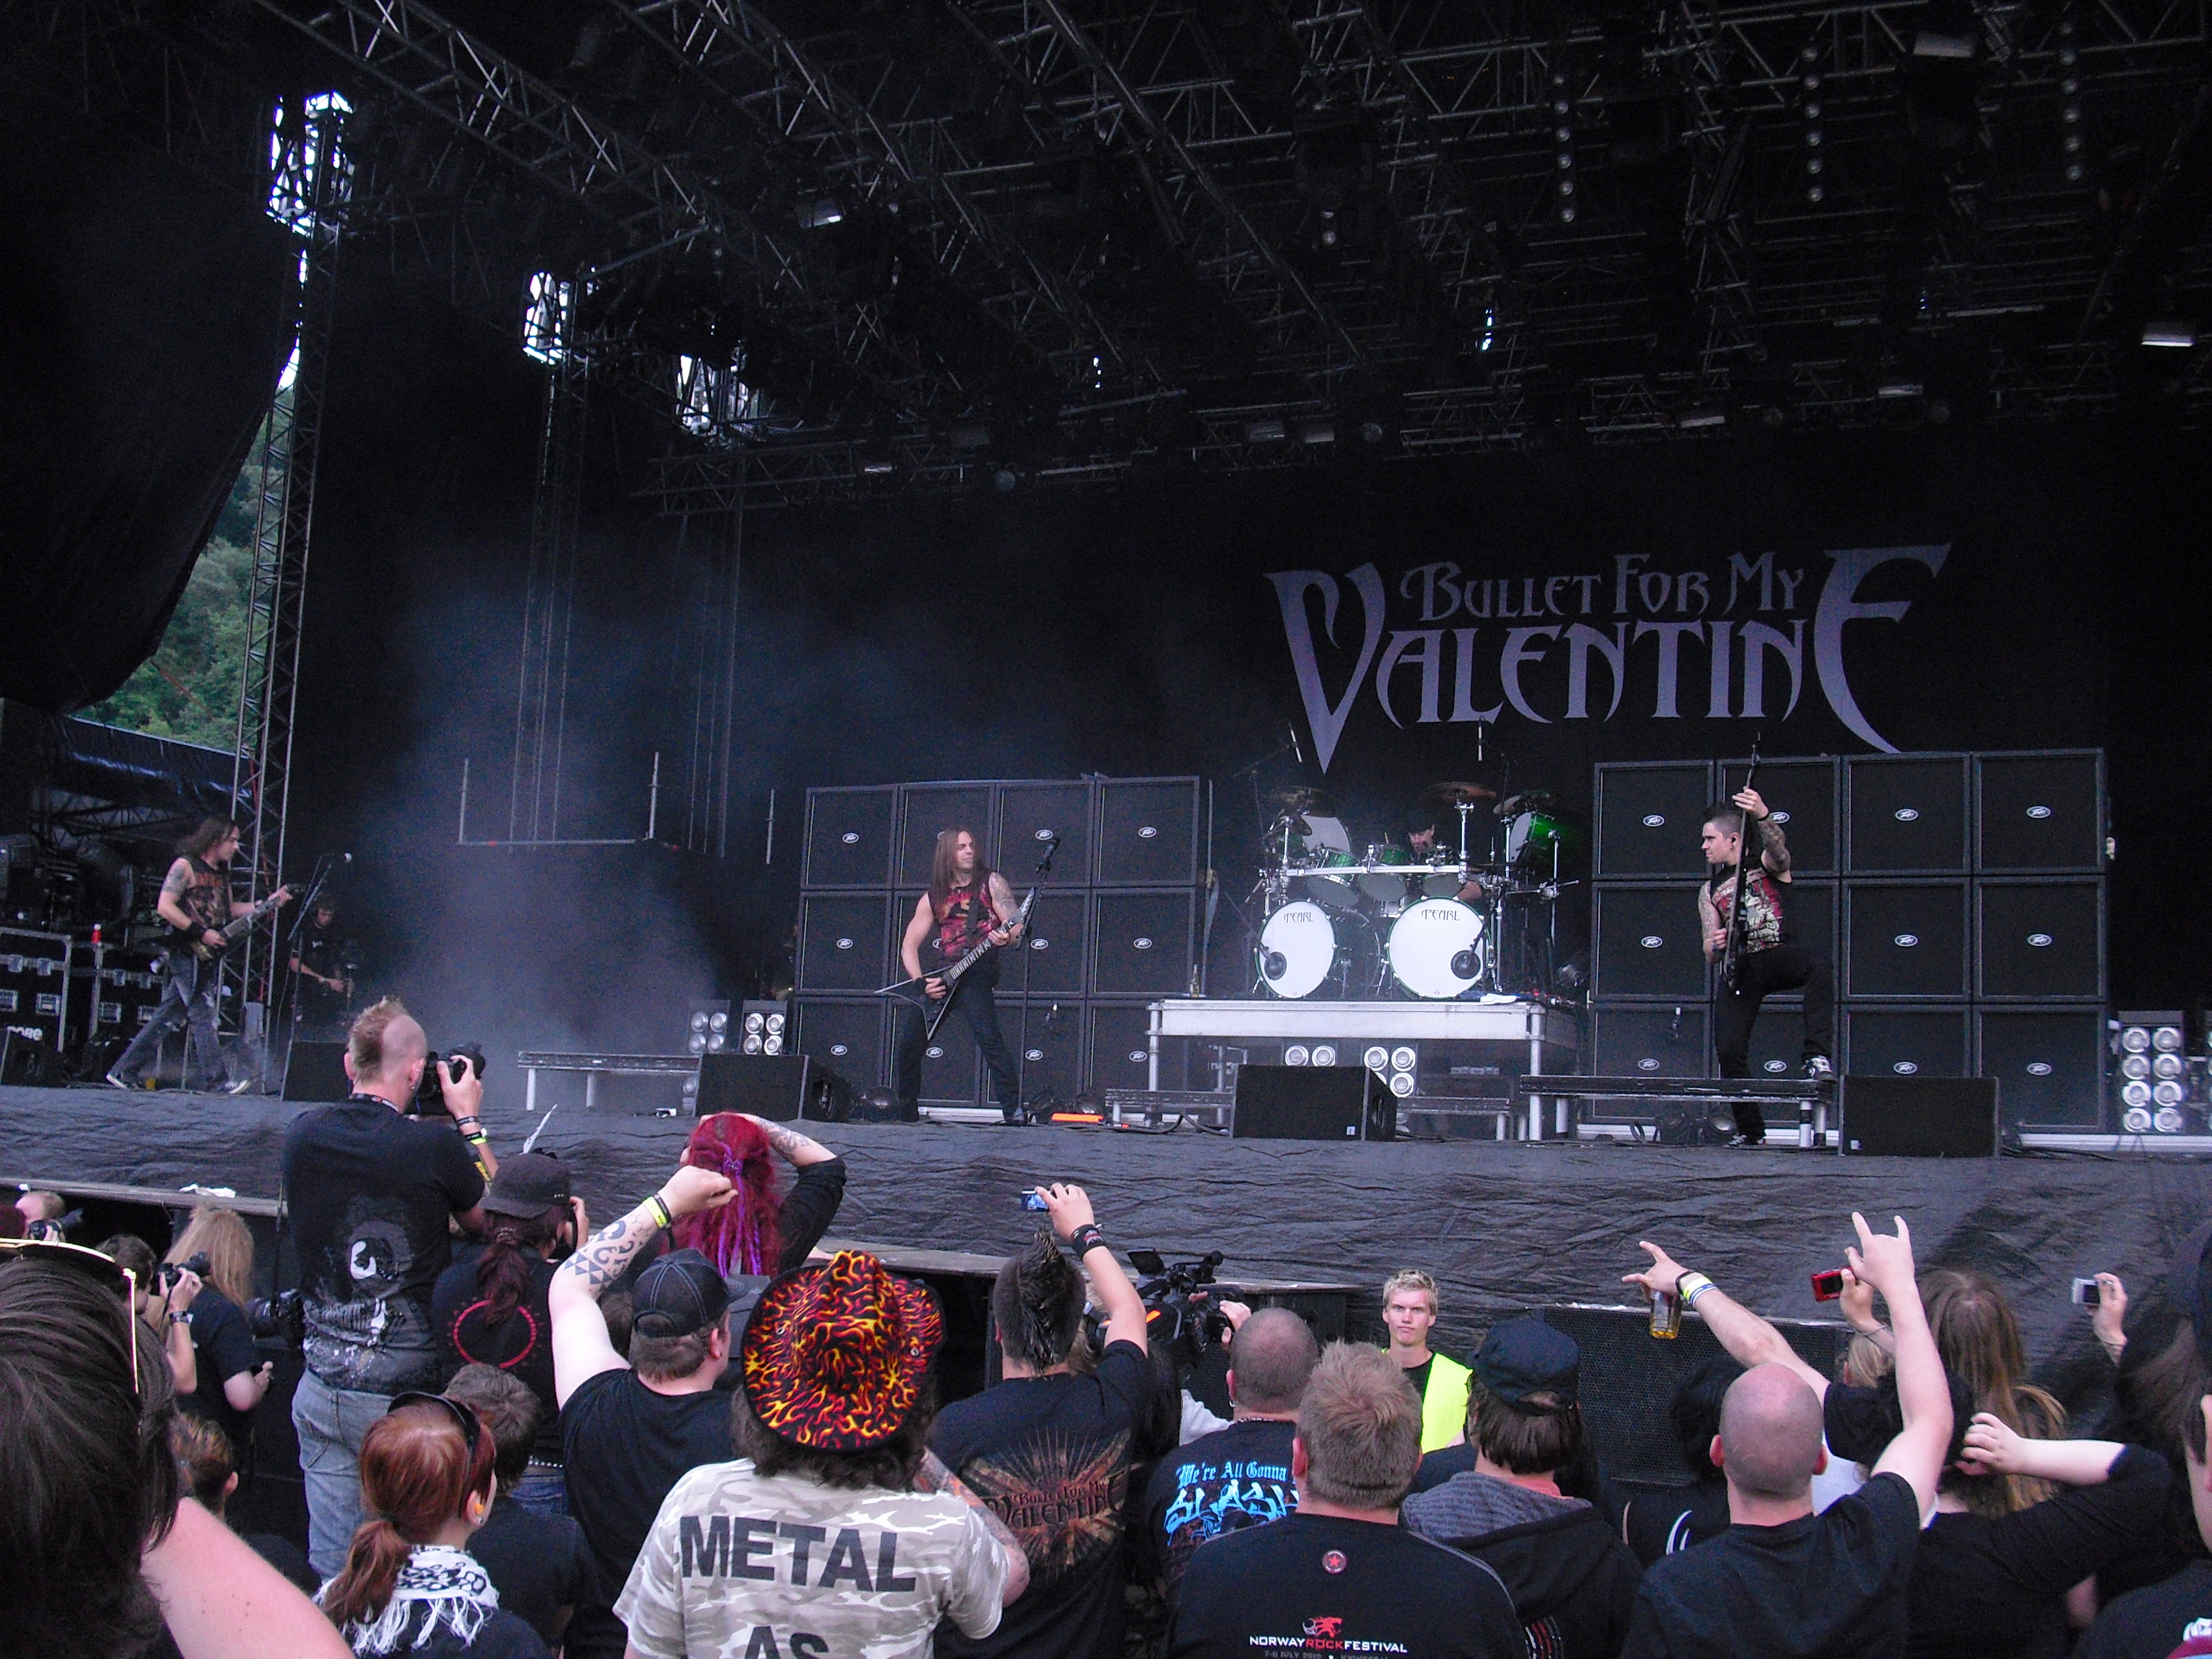 Bullet for my valentine live norway rock 2010g wikipedia bullet for my valentine live norway rock 2010g voltagebd Image collections